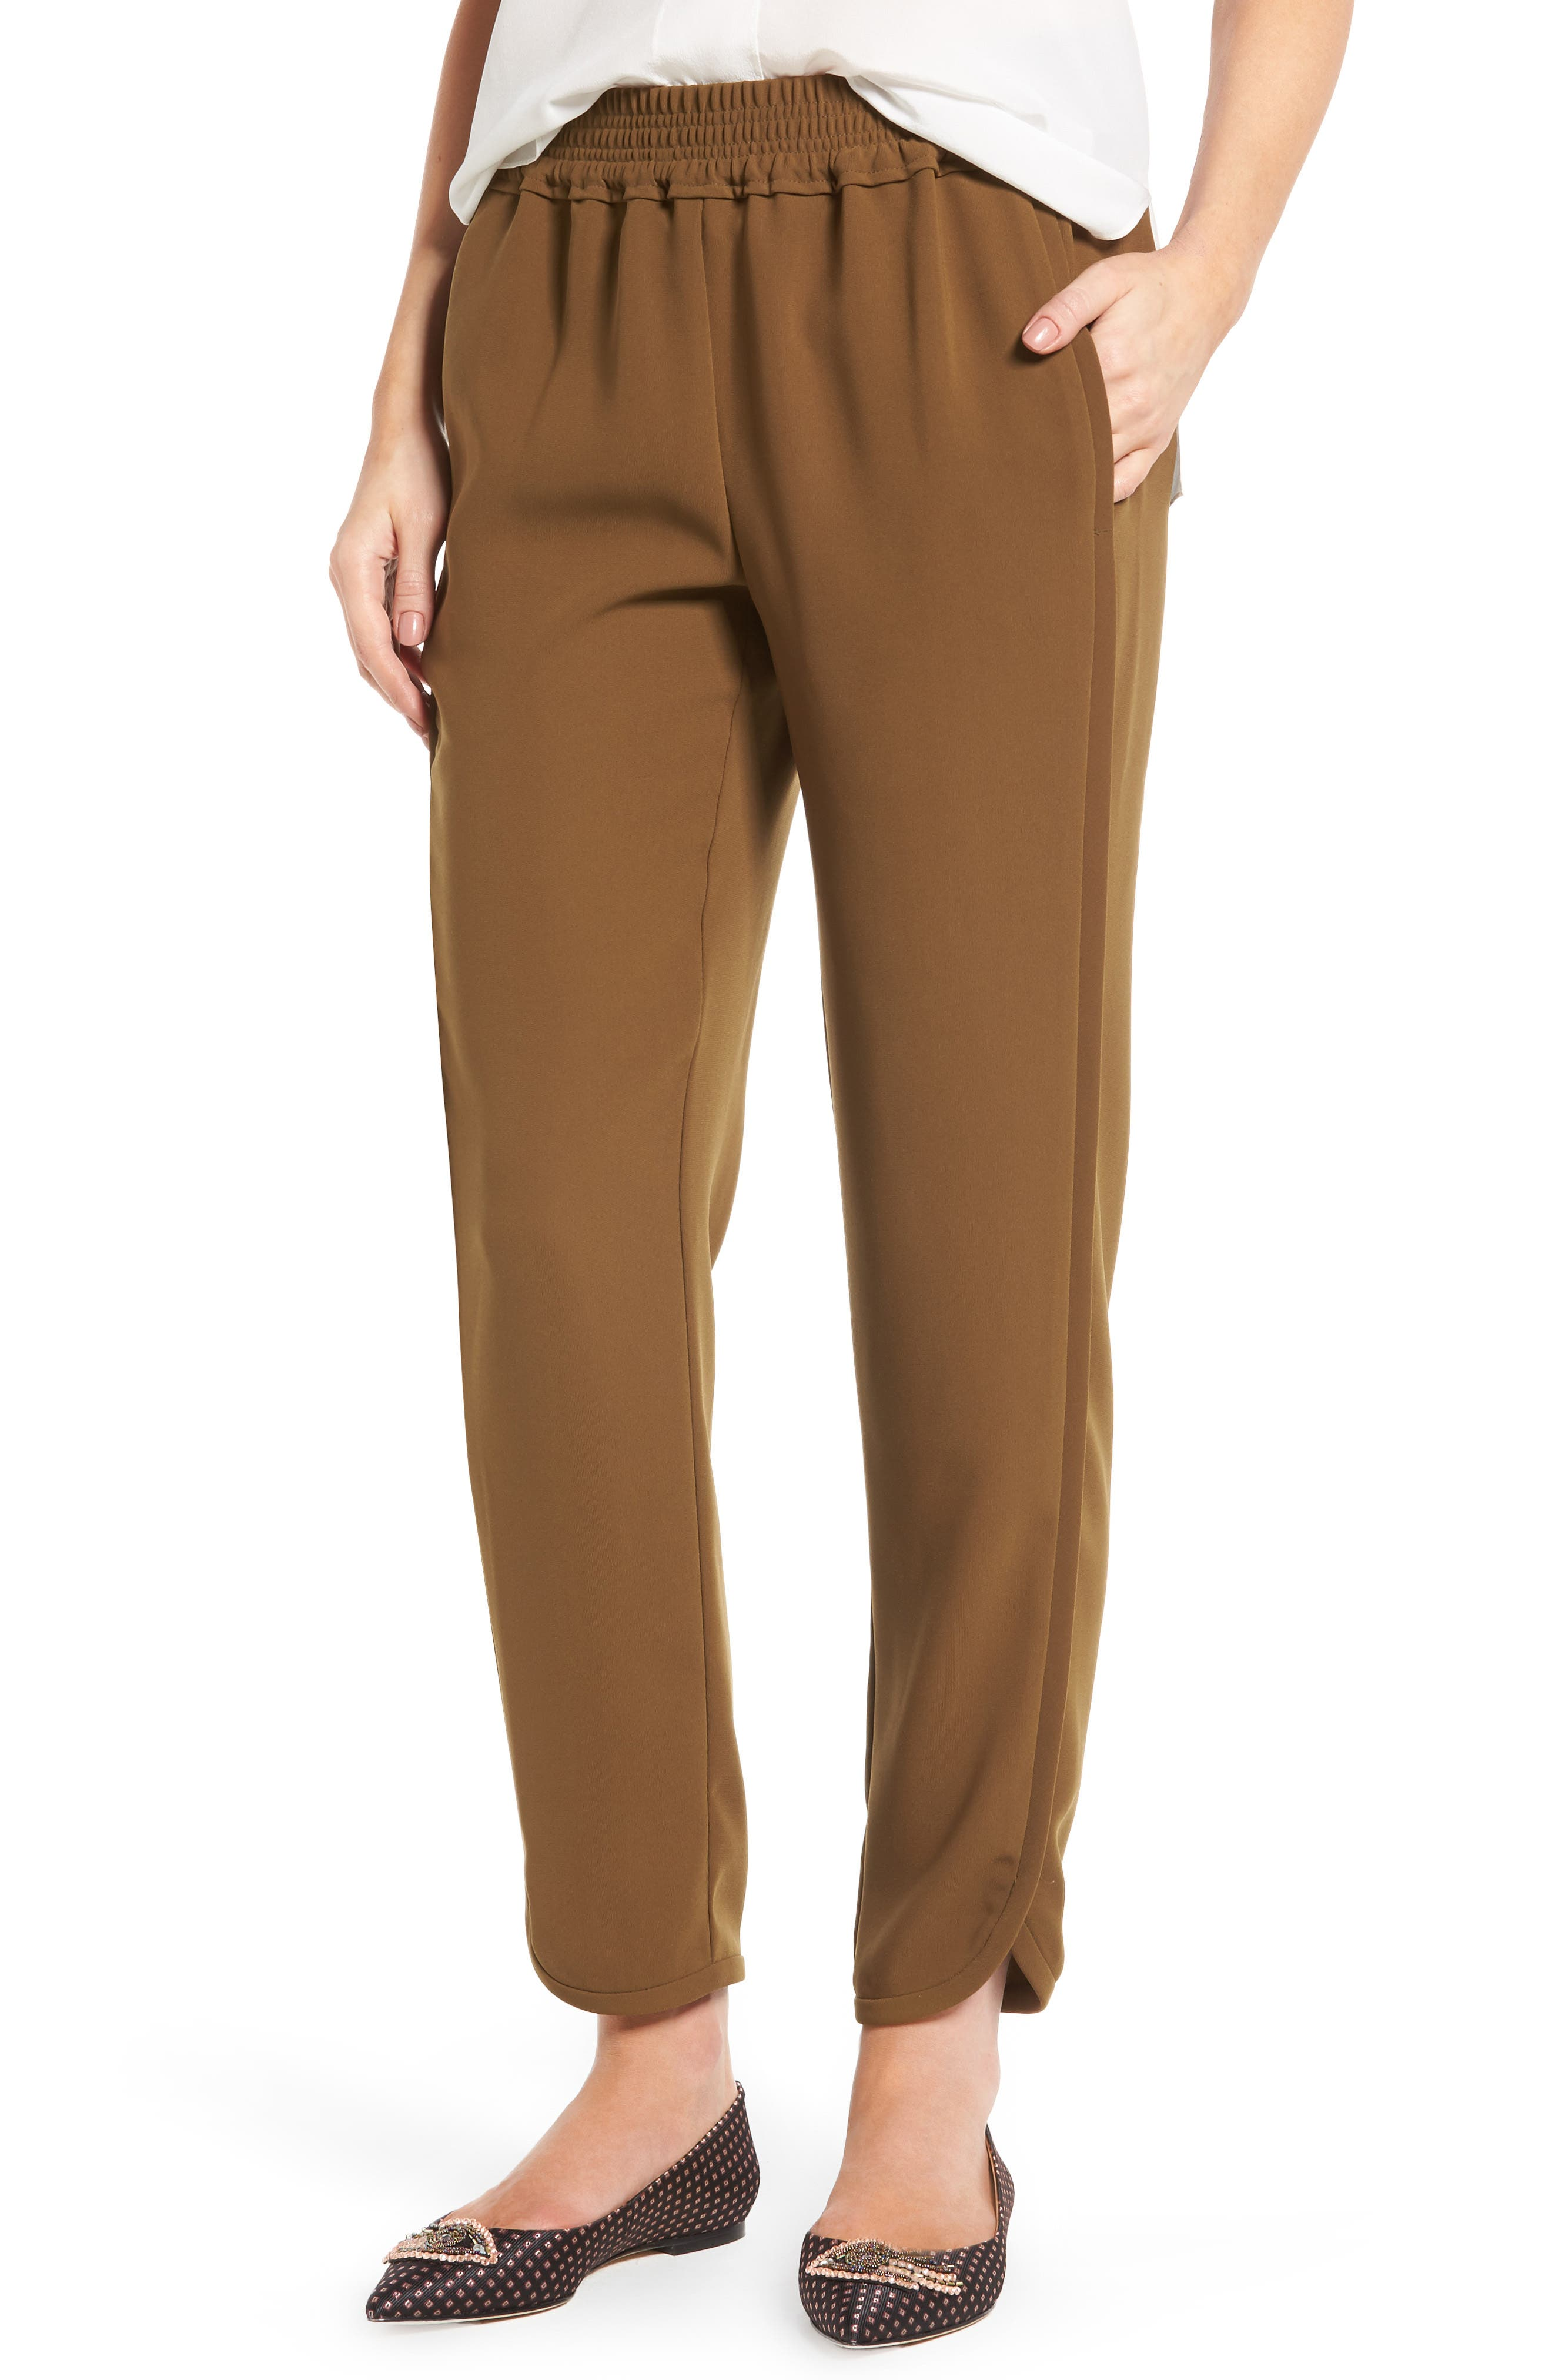 Alternate Image 1 Selected - J.Crew Reese Pants (Regular & Petite)